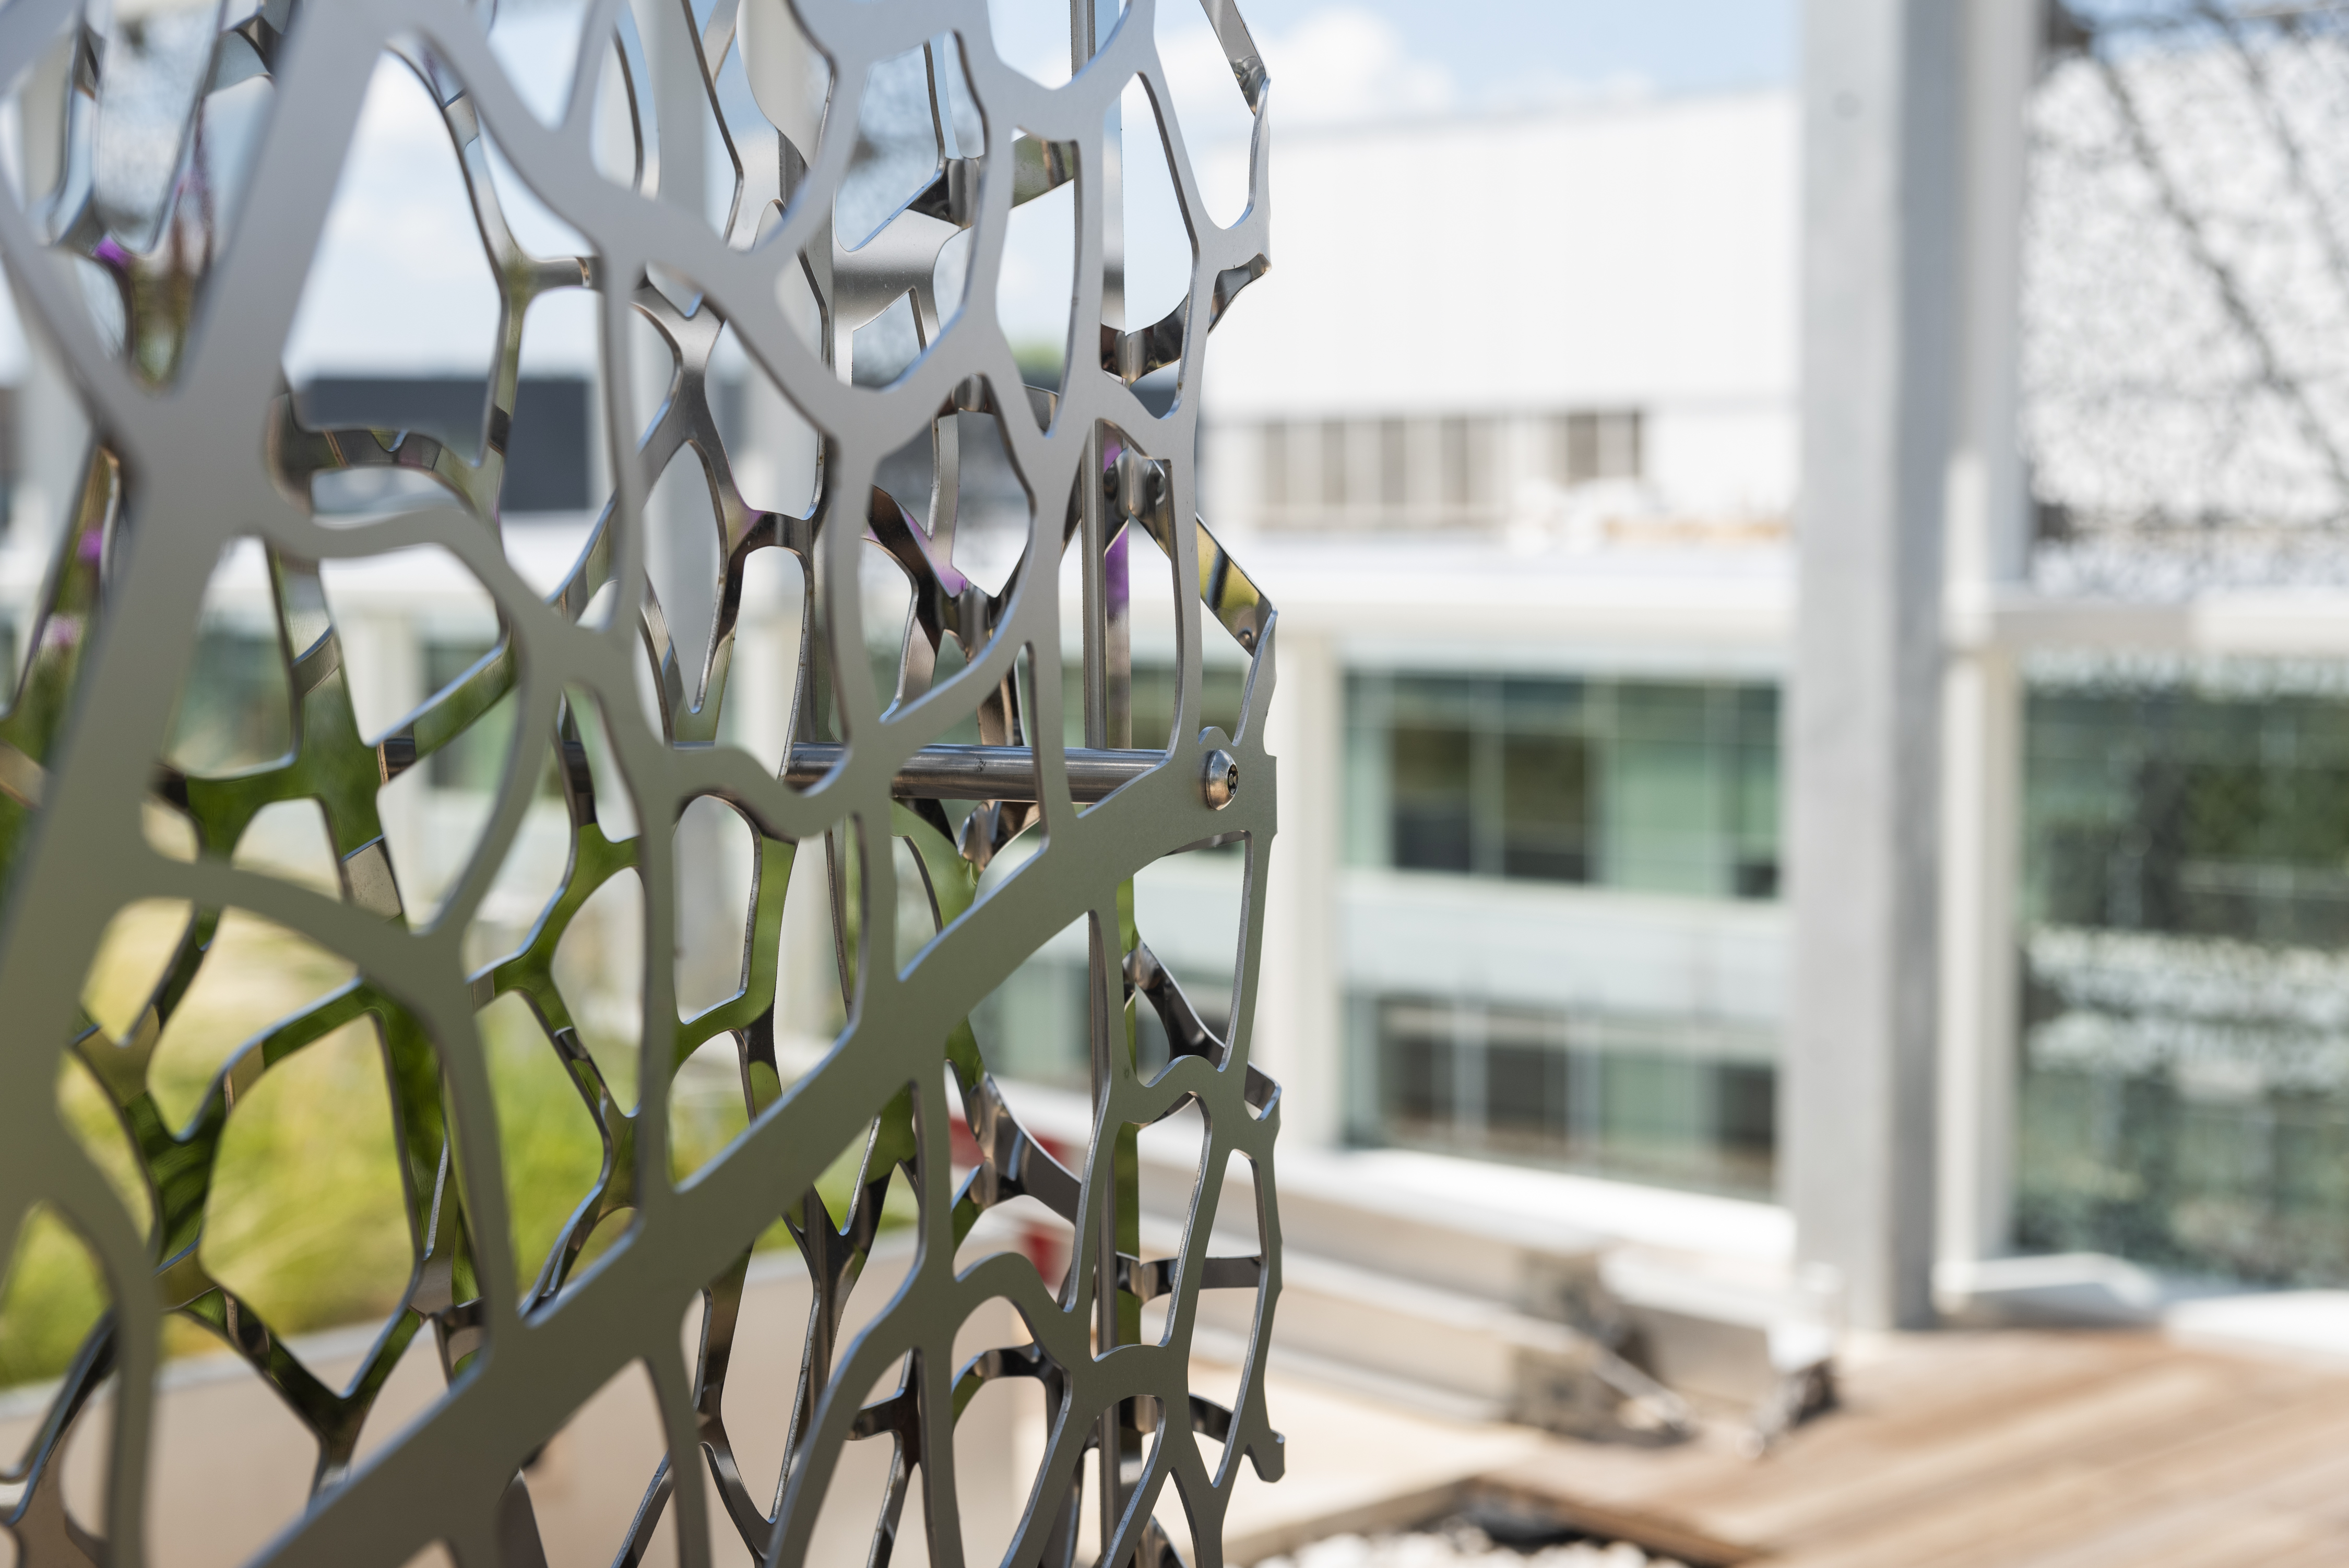 Detail of dual-sided art screen with No. 8 mirror polished stainless steel